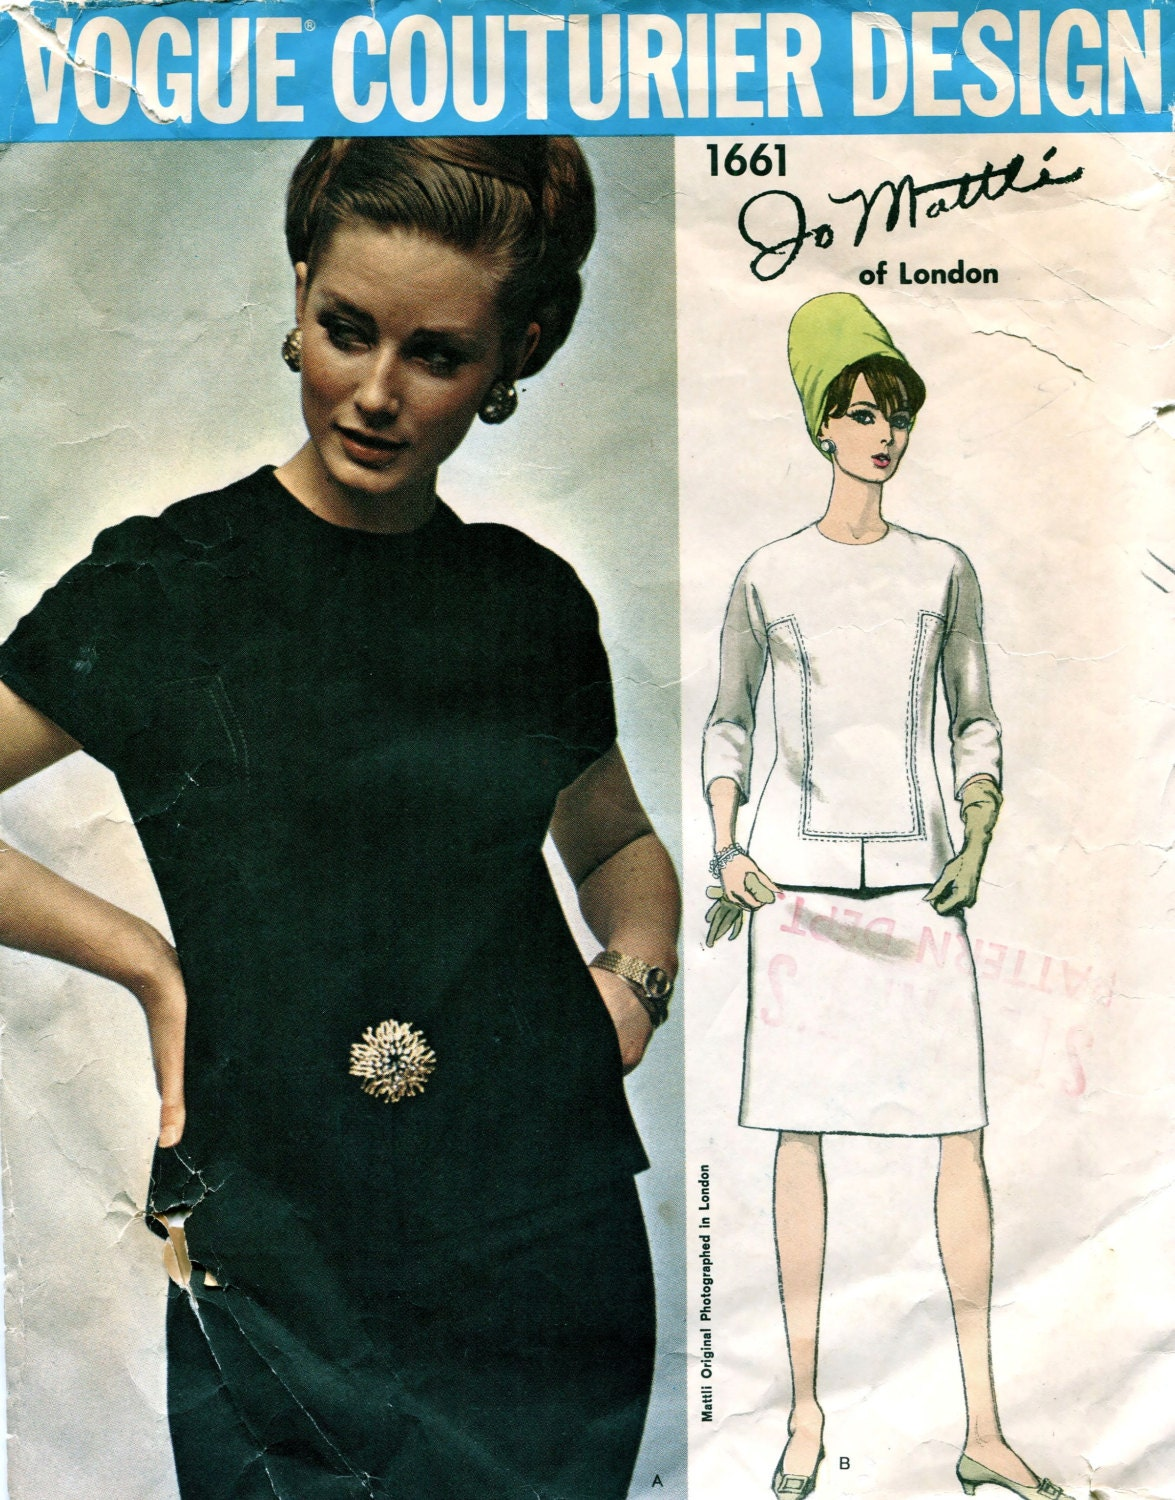 1960s Jo Mattli two-piece dress pattern feat. Tania Mallet, Vogue Couturier Design 1661